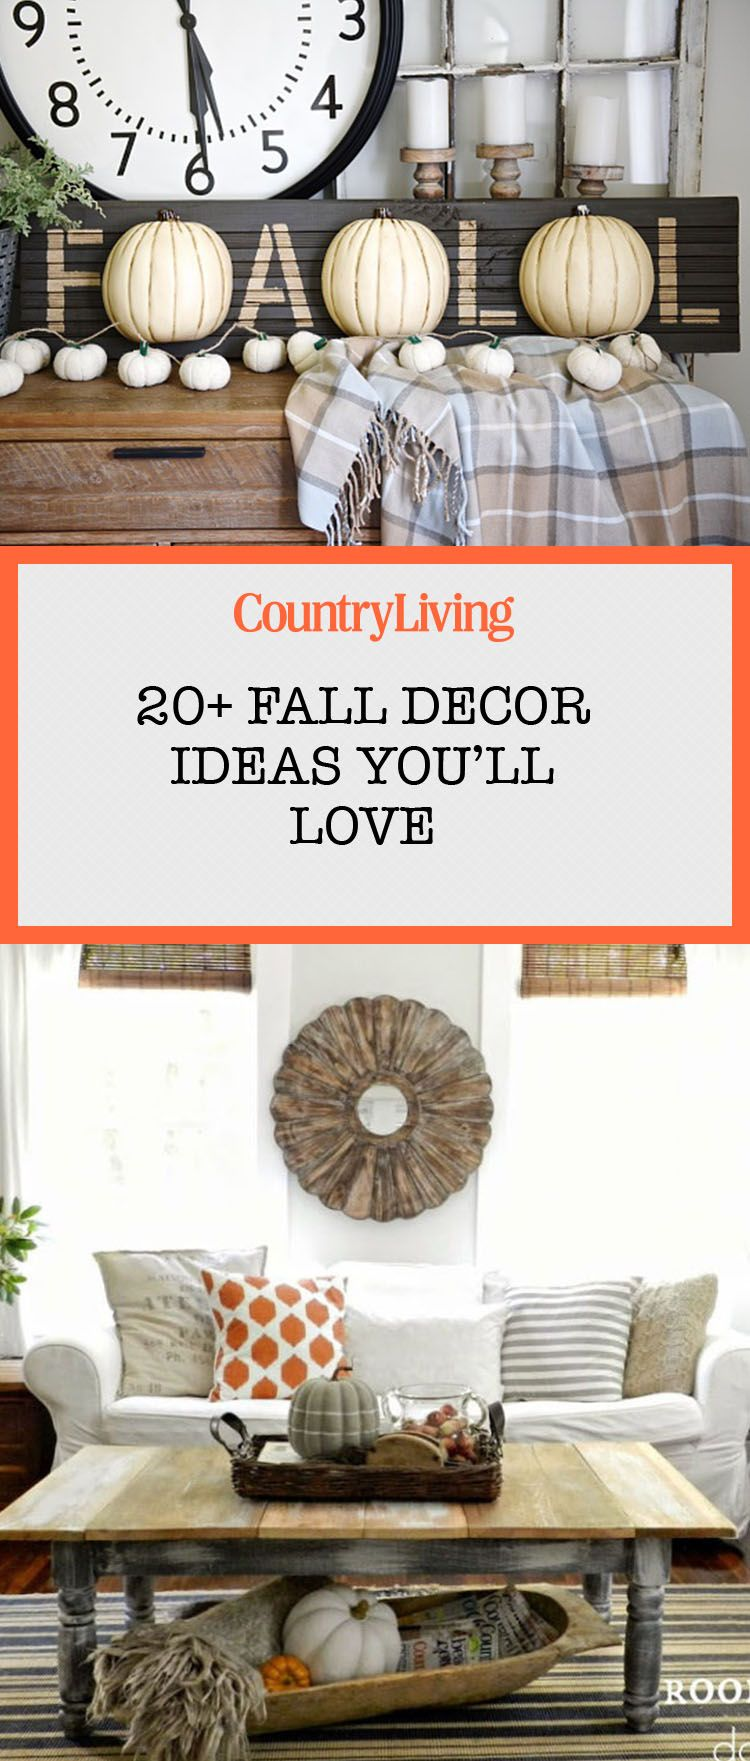 21 Ways to Add Farmhouse Style to Your Home This Fall   Country ...